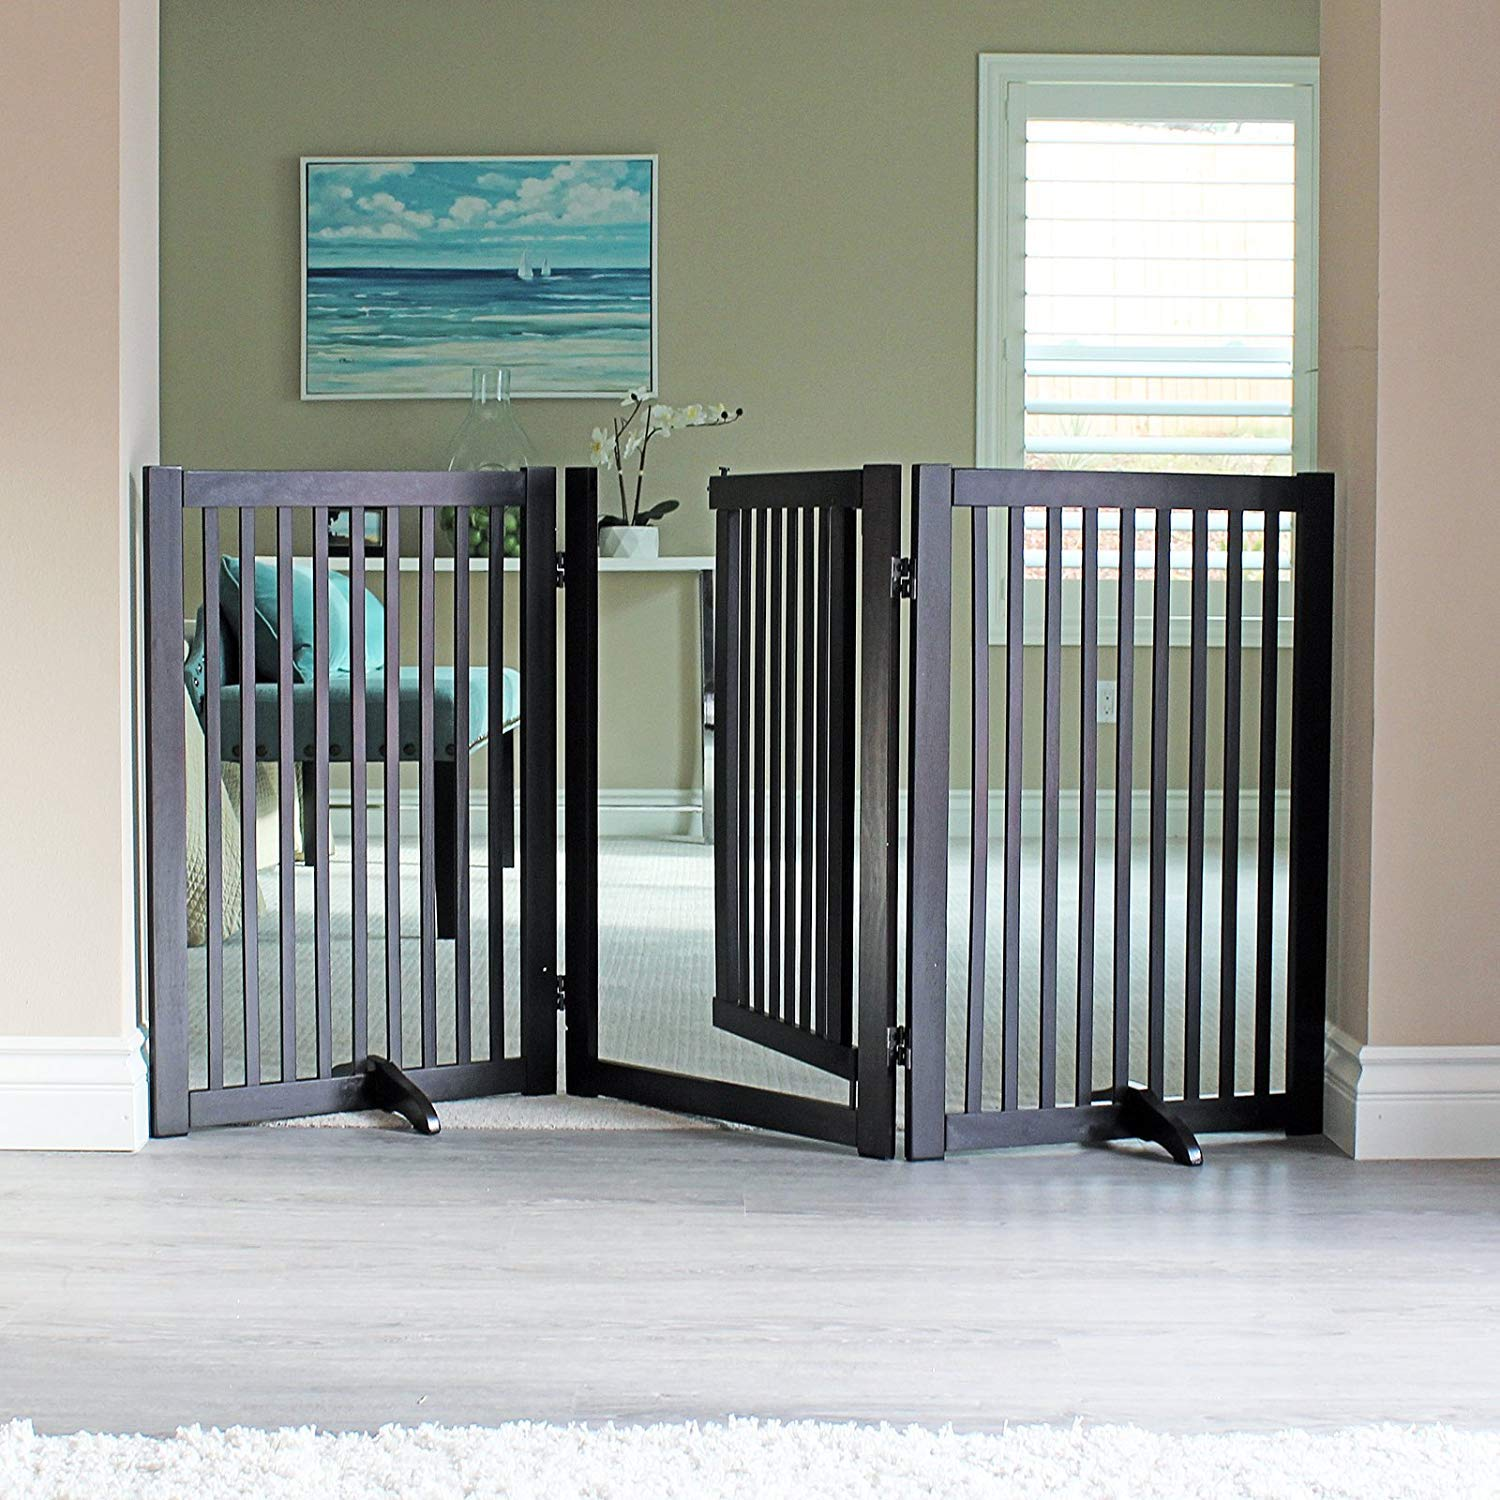 WELLAND Freestanding Wood Pet Gate with Walk Through Door Espresso, 66-Inch Width, 32-Inch Height (Set of Support Feet Included) by WELLAND (Image #2)